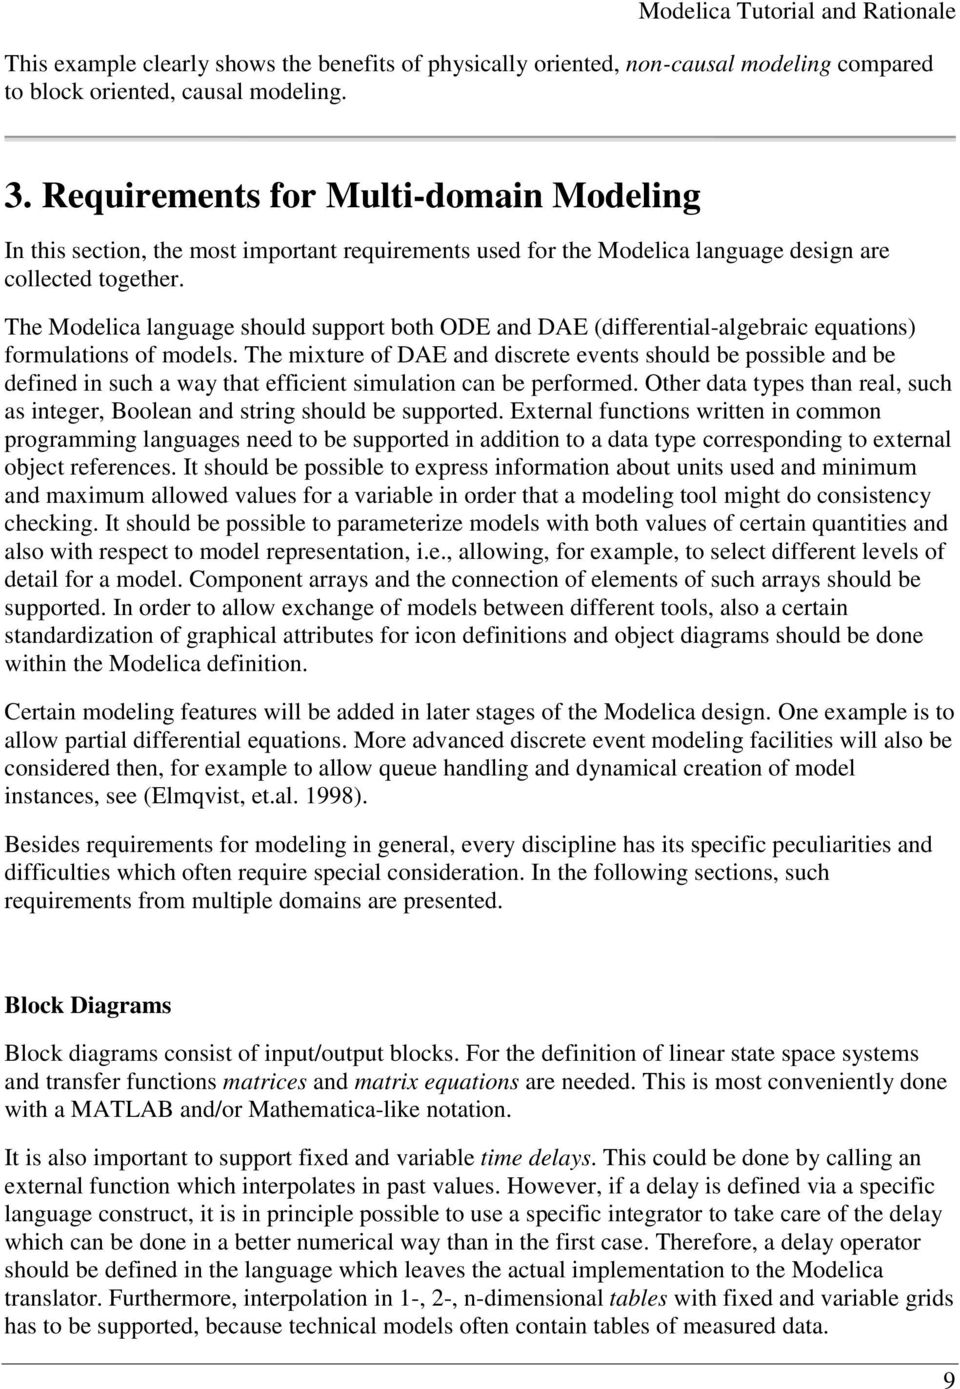 Modelica TM - A Unified Object-Oriented Language for